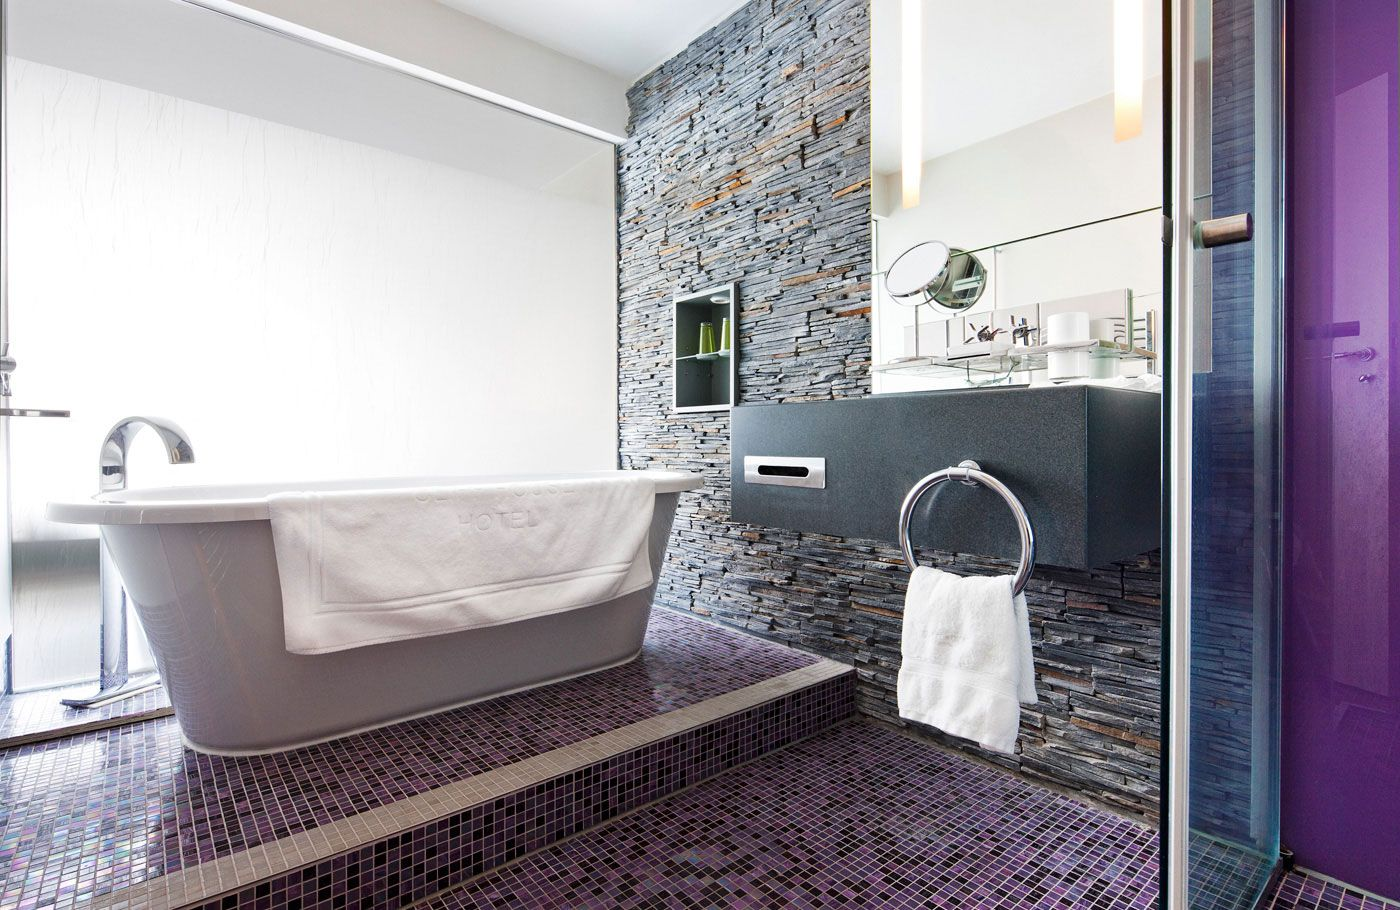 Luxury Bathrooms Ireland the cliff house hotel, luxury five star hotel ardmore co waterford